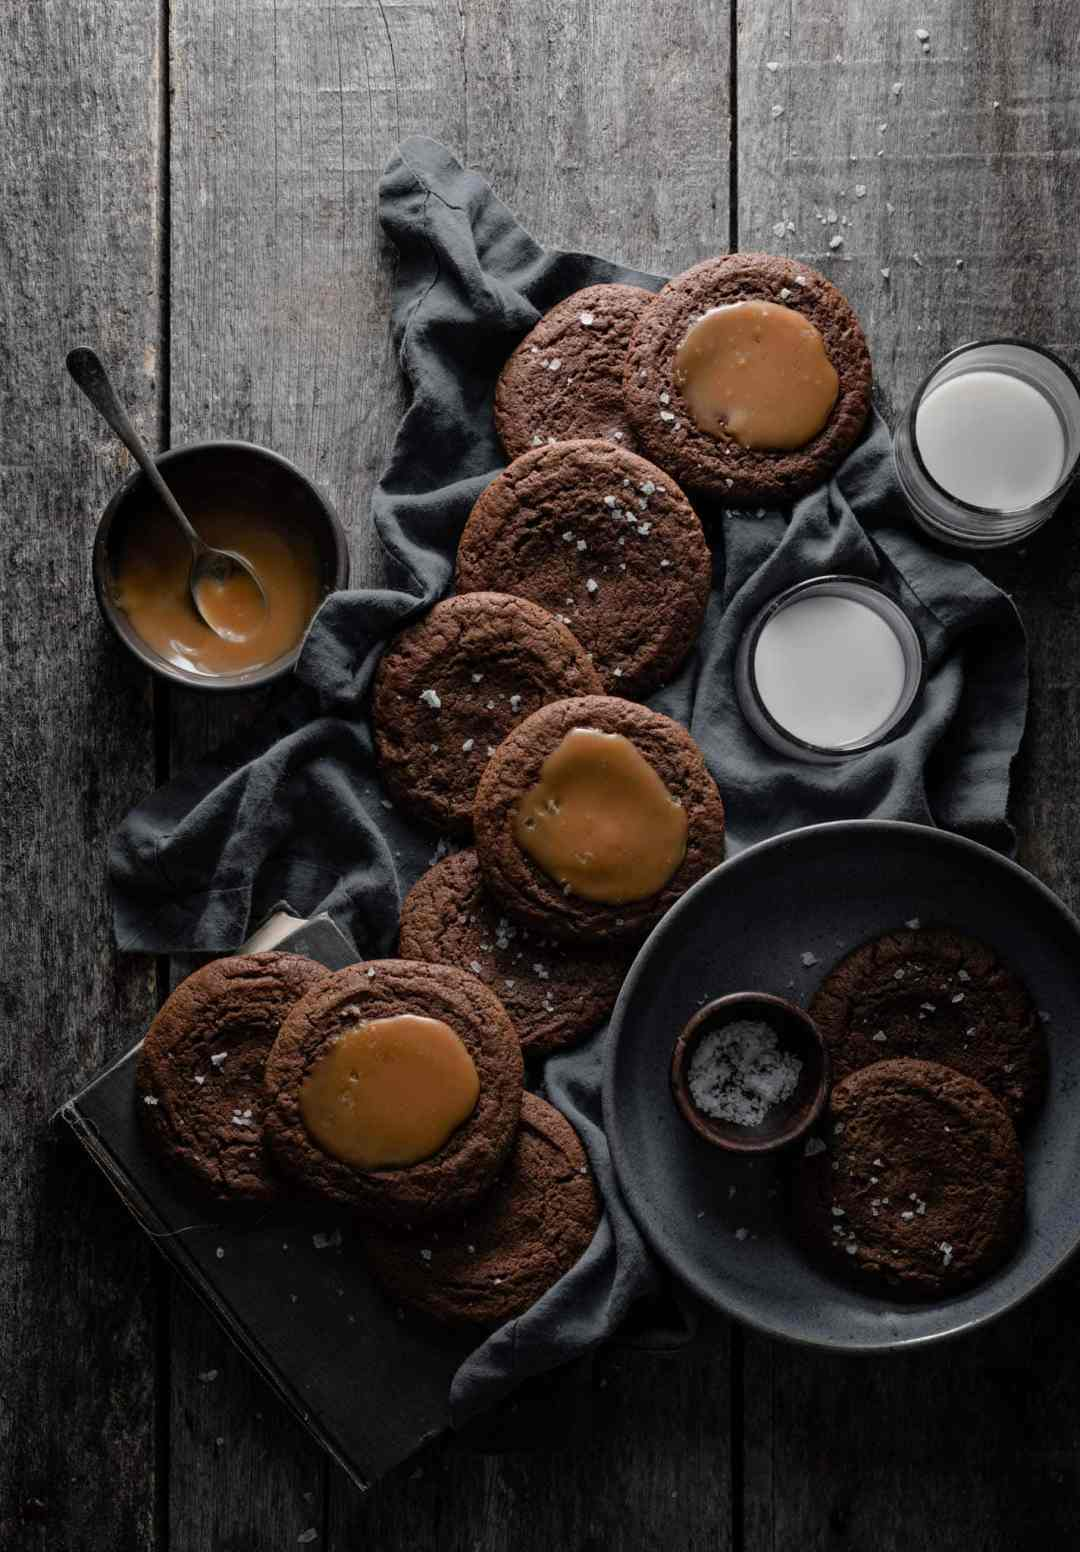 chocolate cookies topped with caramel and sea salt on wood table.